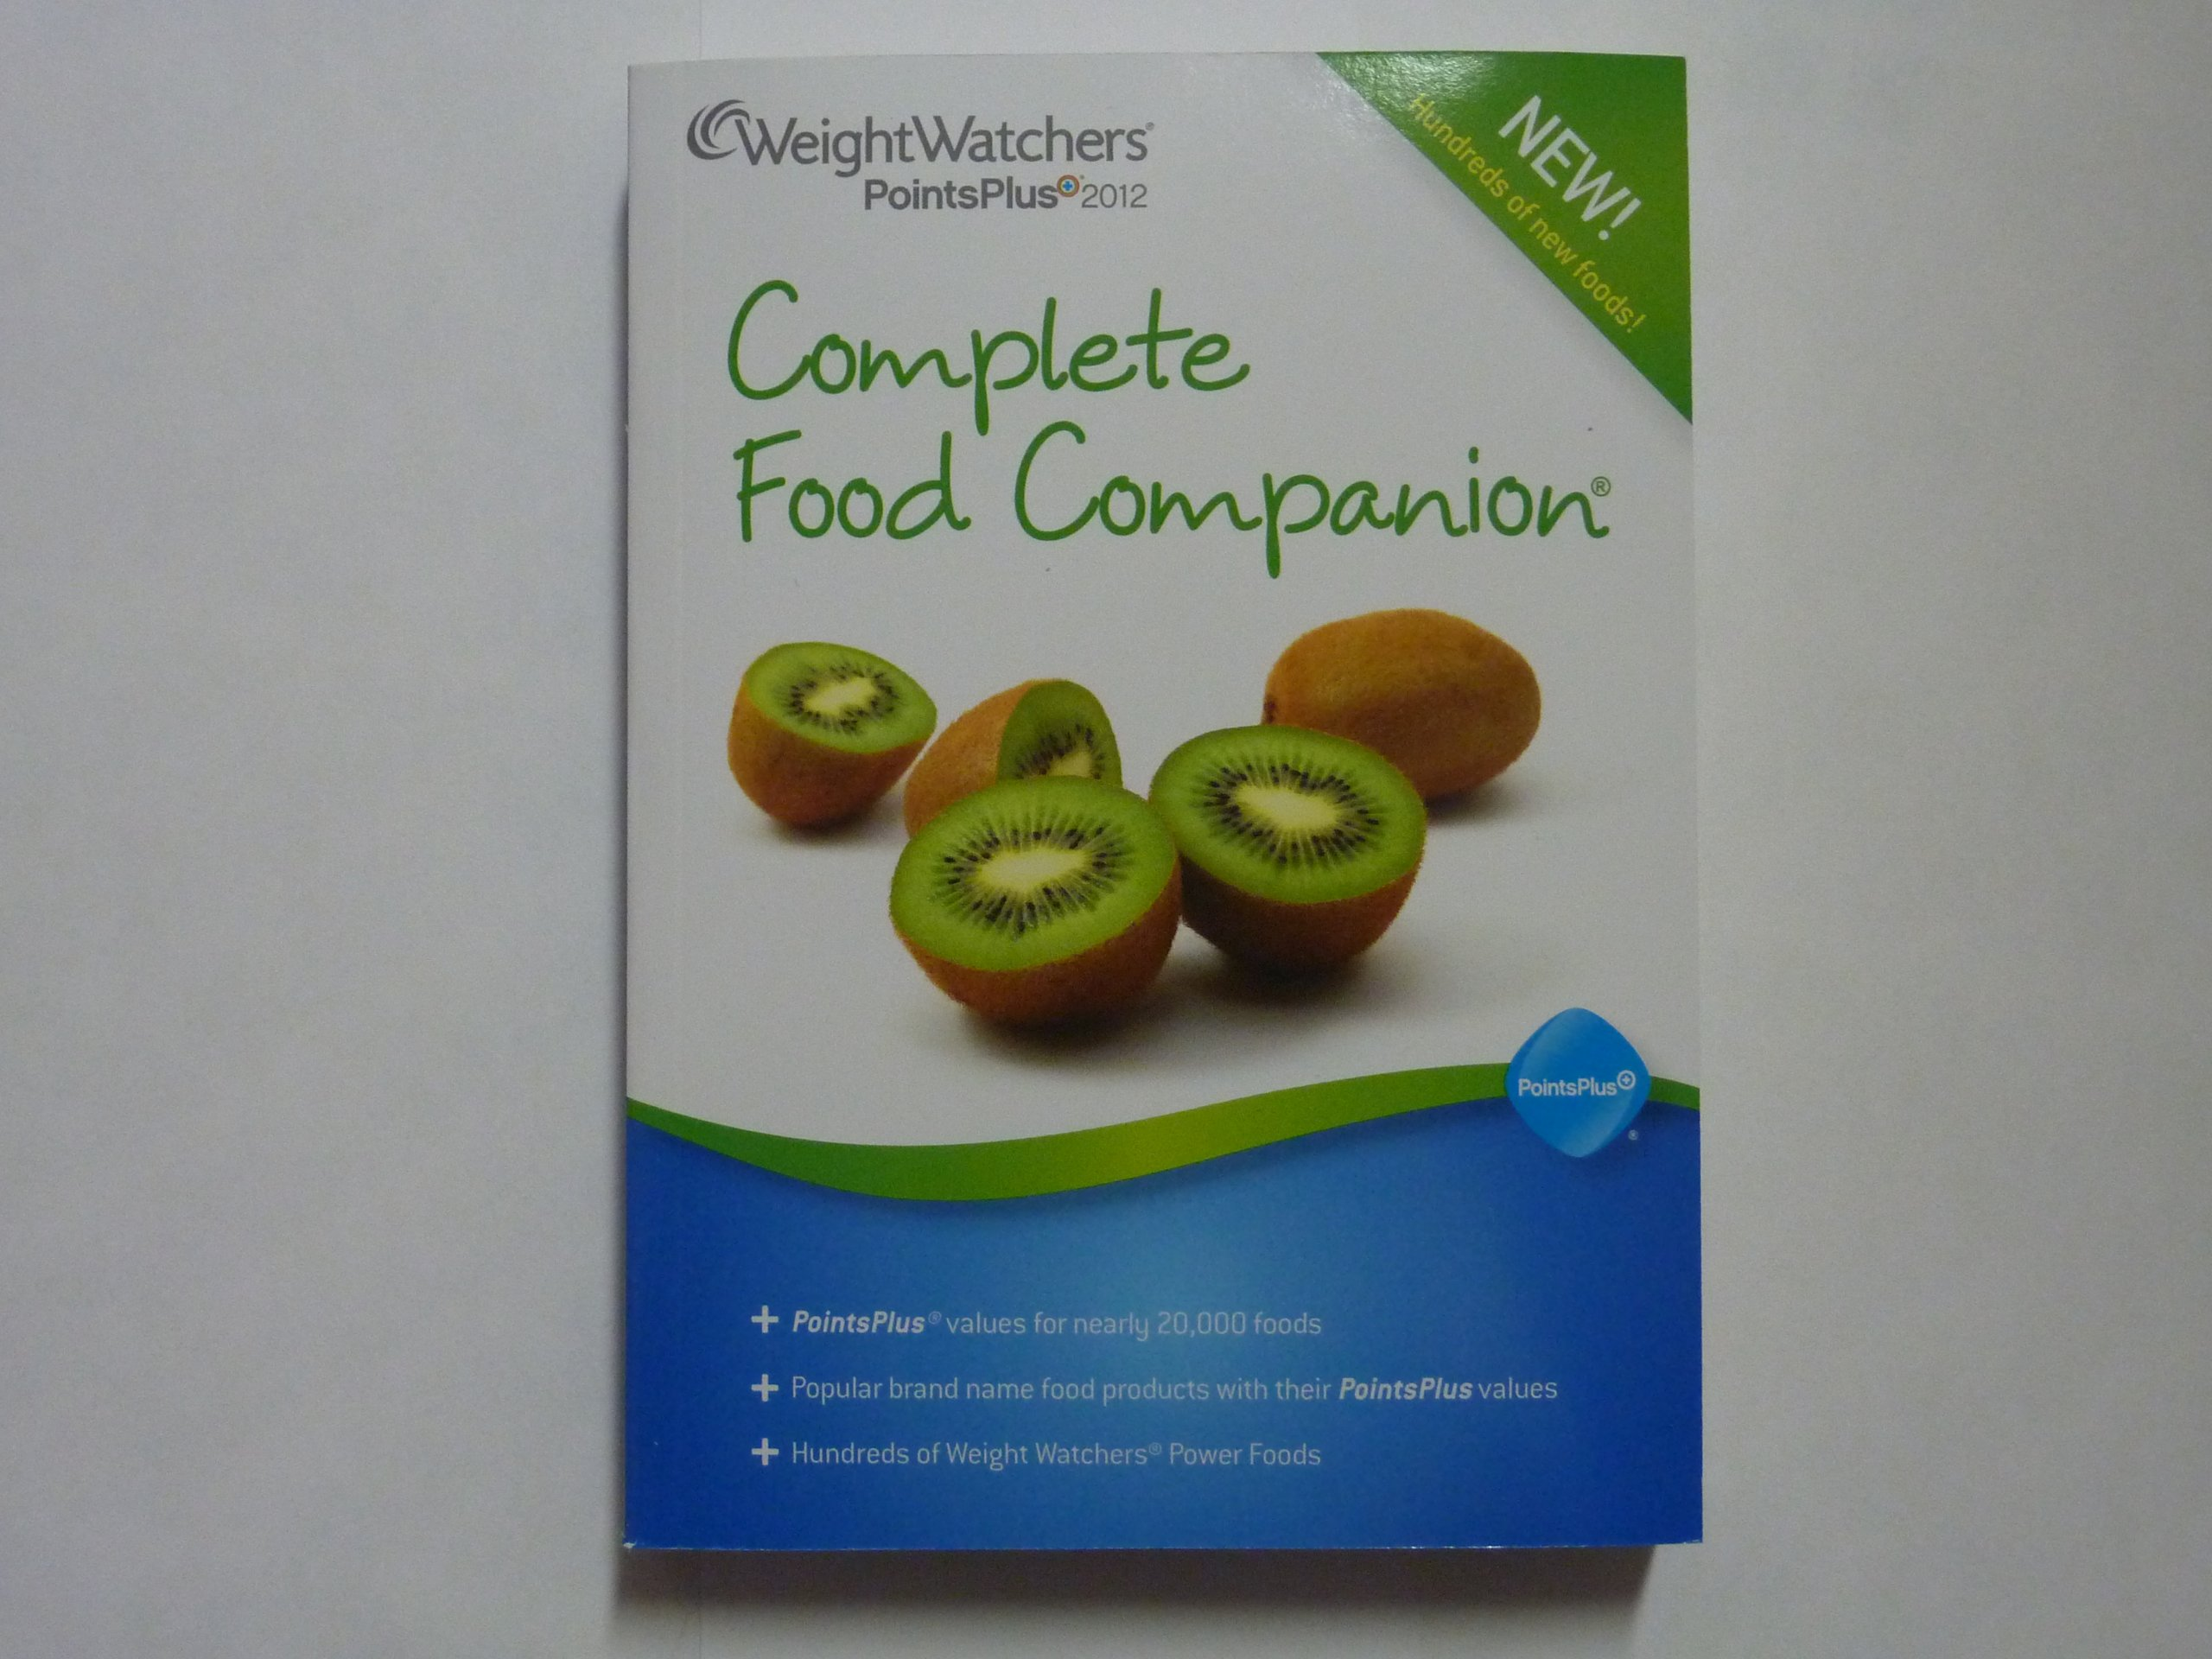 Weight watchers 2012 complete food companion brand new points plus weight watchers 2012 complete food companion brand new points plus amazon books nvjuhfo Images